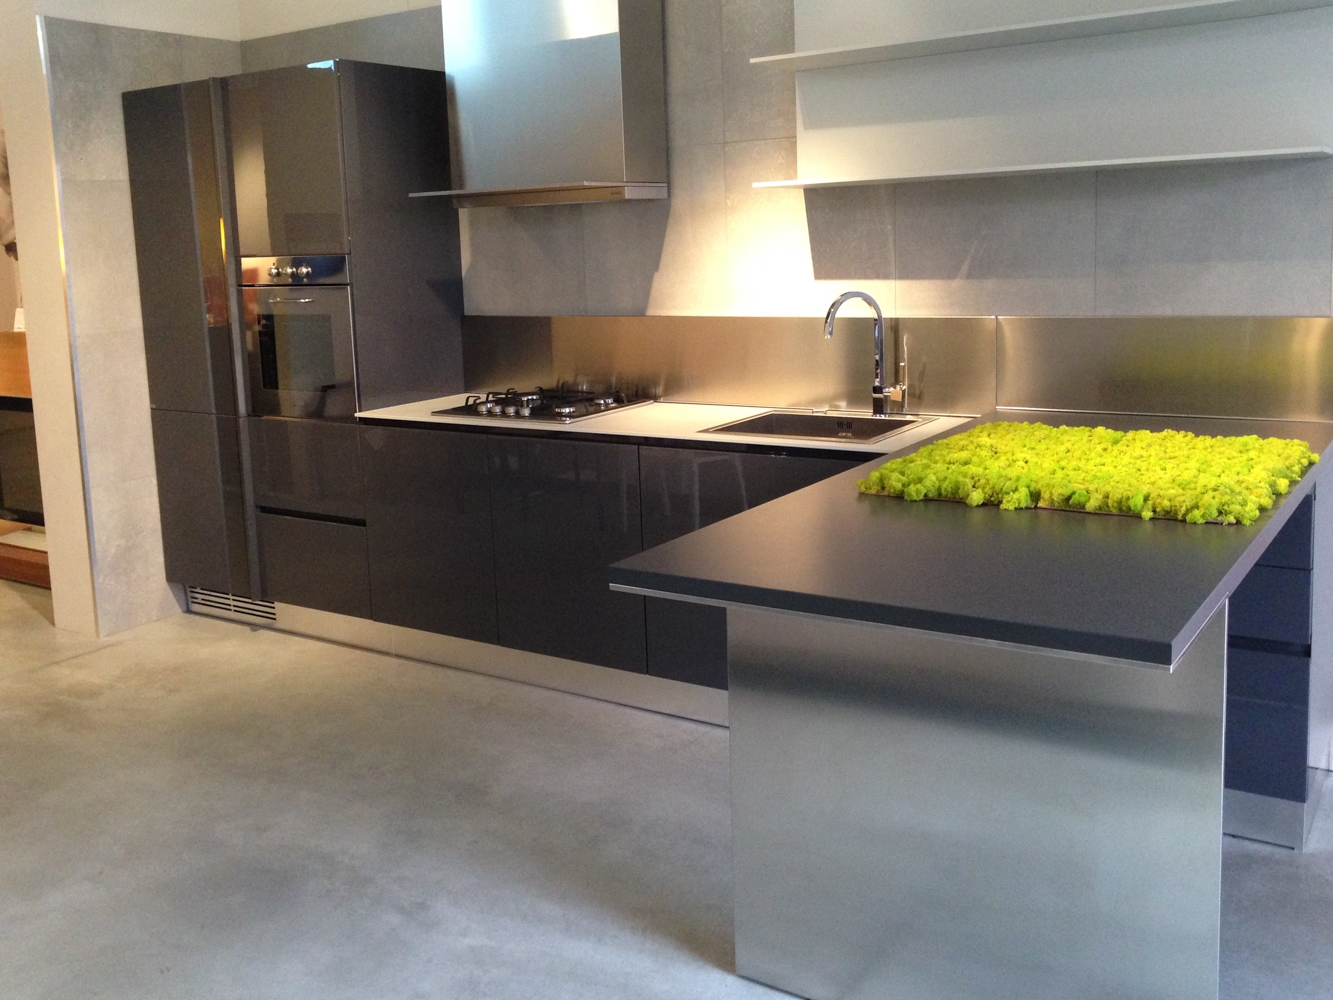 cucina con penisola ernestomeda modello emetrica scontata modern kitchens ernestomeda the italian design kitchens